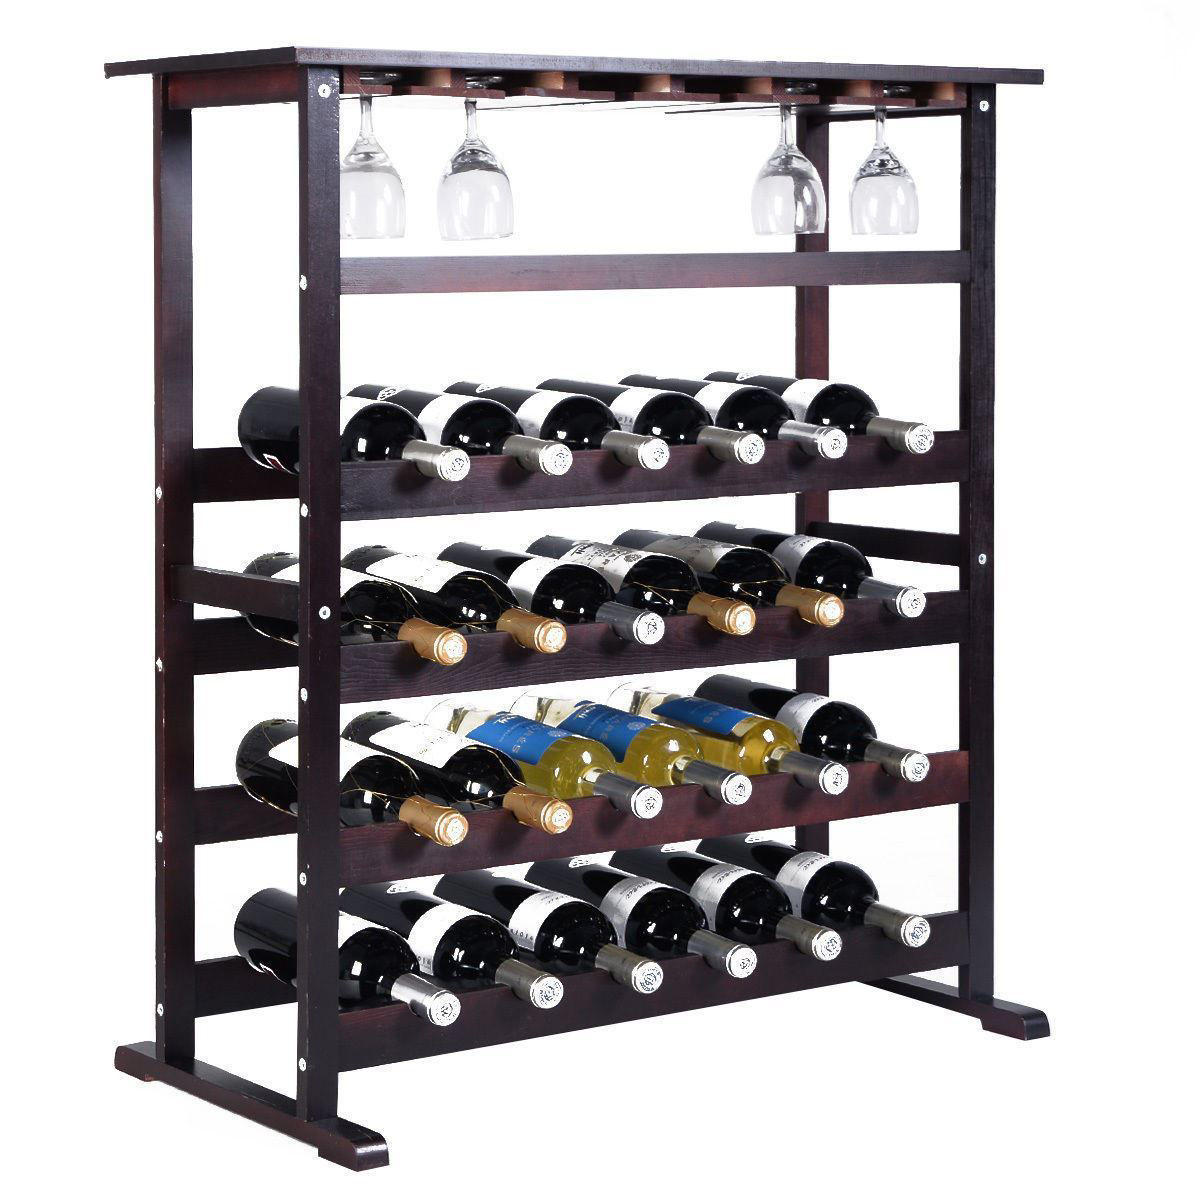 Picture of Wine Rack Holder Storage with Glass Hanger for 24 Bottles